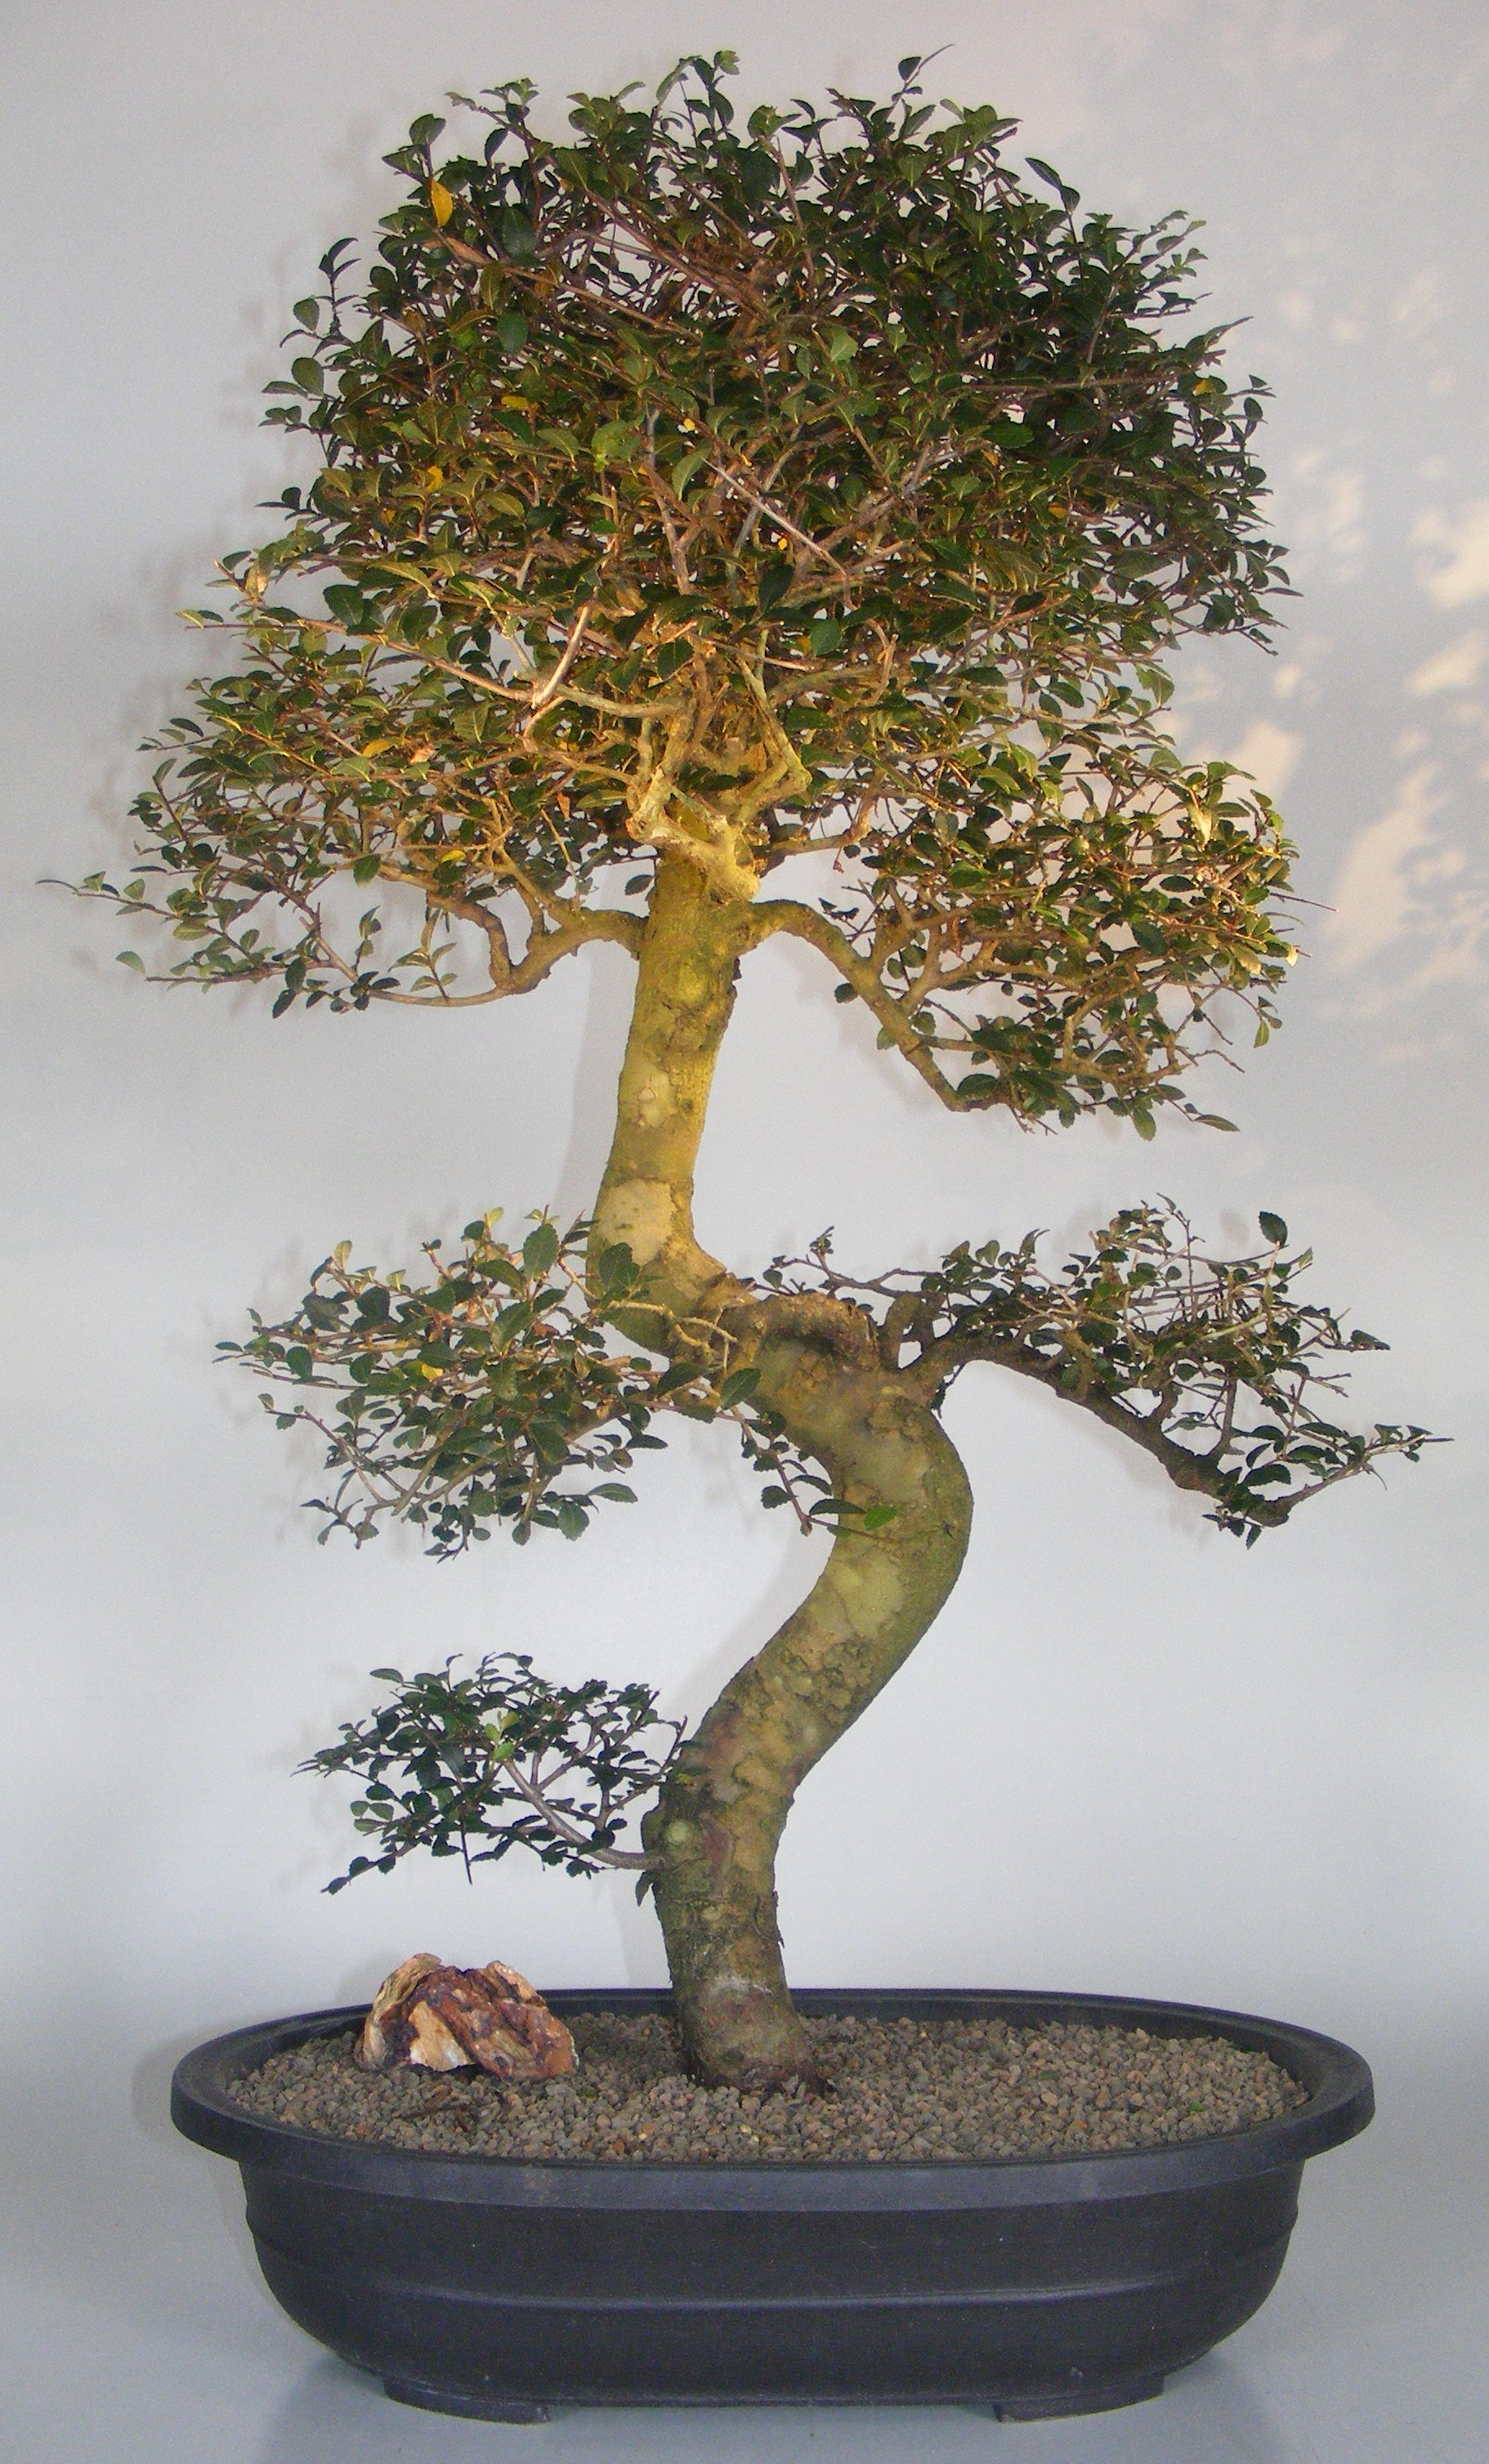 Chinese Elm Bonsai TreeCurved Trunk & Tiered Branching Style(ulmus parvifolia) Image